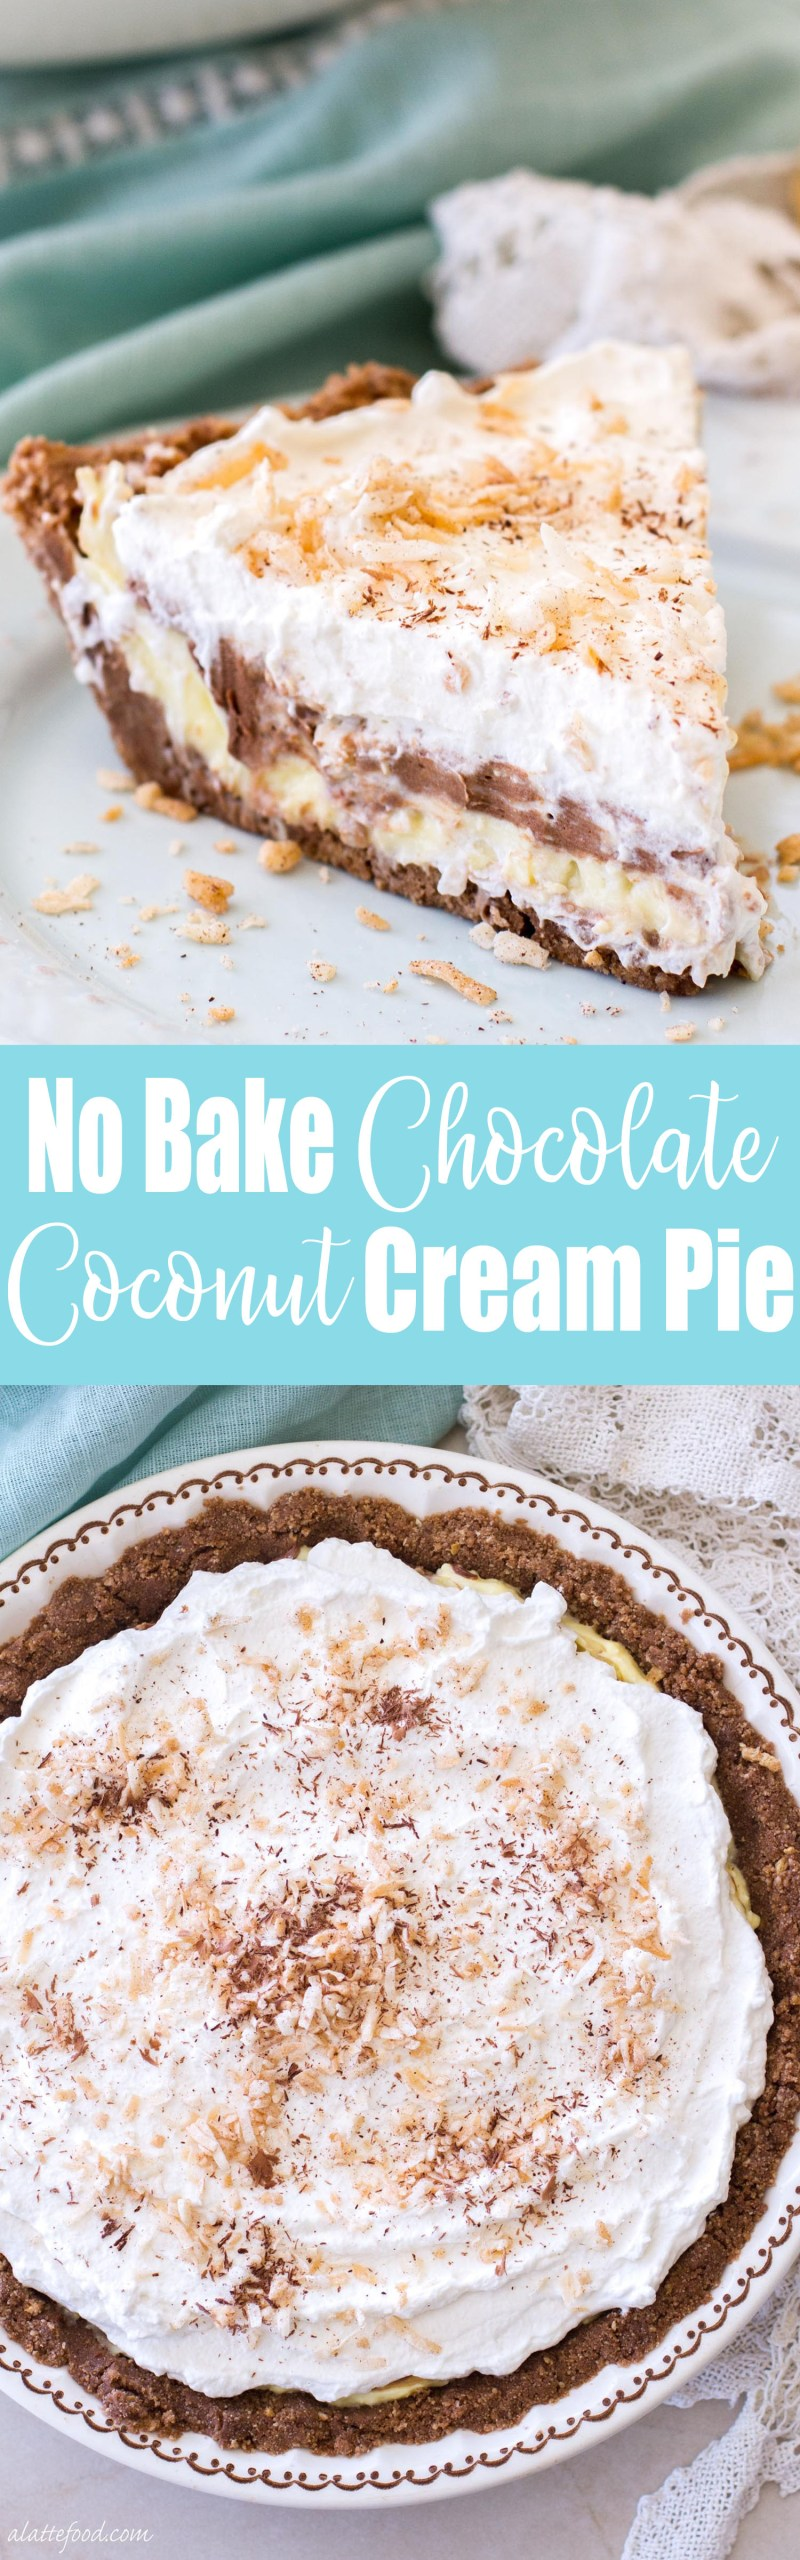 This easy, no-bake chocolate coconut cream pie recipe is the perfect summer dessert! Whipped cream, chocolate cream, and coconut cream are layered on top of a Keebler cookie crust! It's glorious. coconut cream pie, chocolate cream pie, homemade coconut cream pie